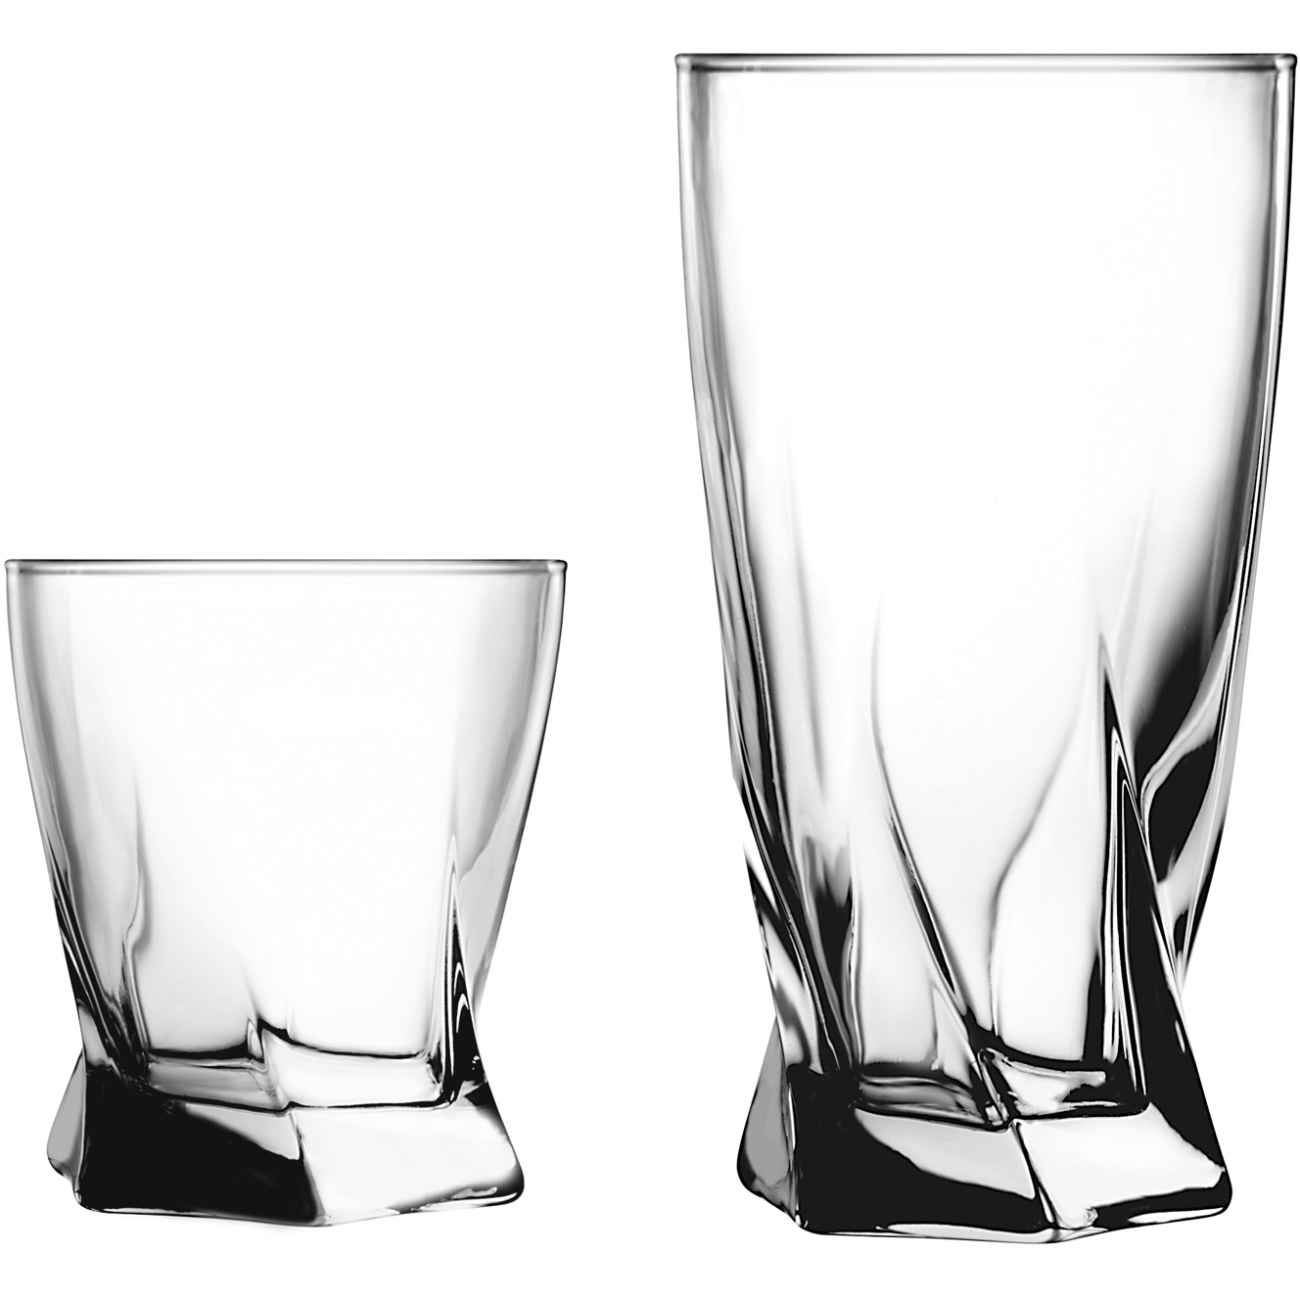 Click here to buy Anchor Hocking Sybil 16 Piece Drinkware Set by Anchor Hocking Glass Company.